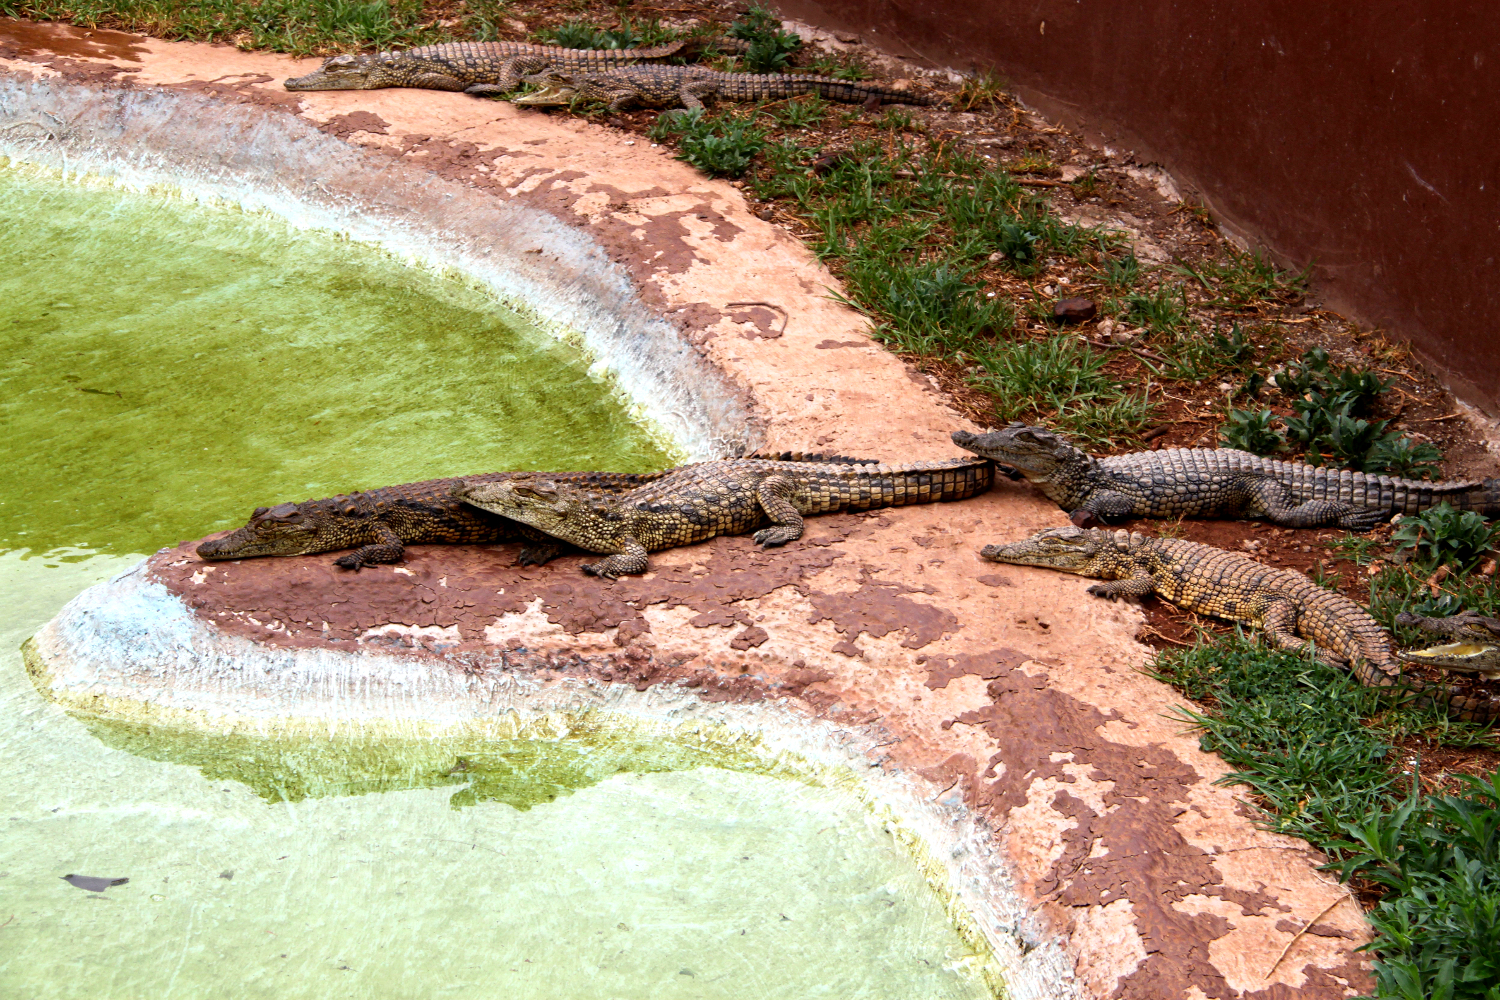 Crocodiles at The Rhino and Lion Nature Reserve in Gauteng, South Africa